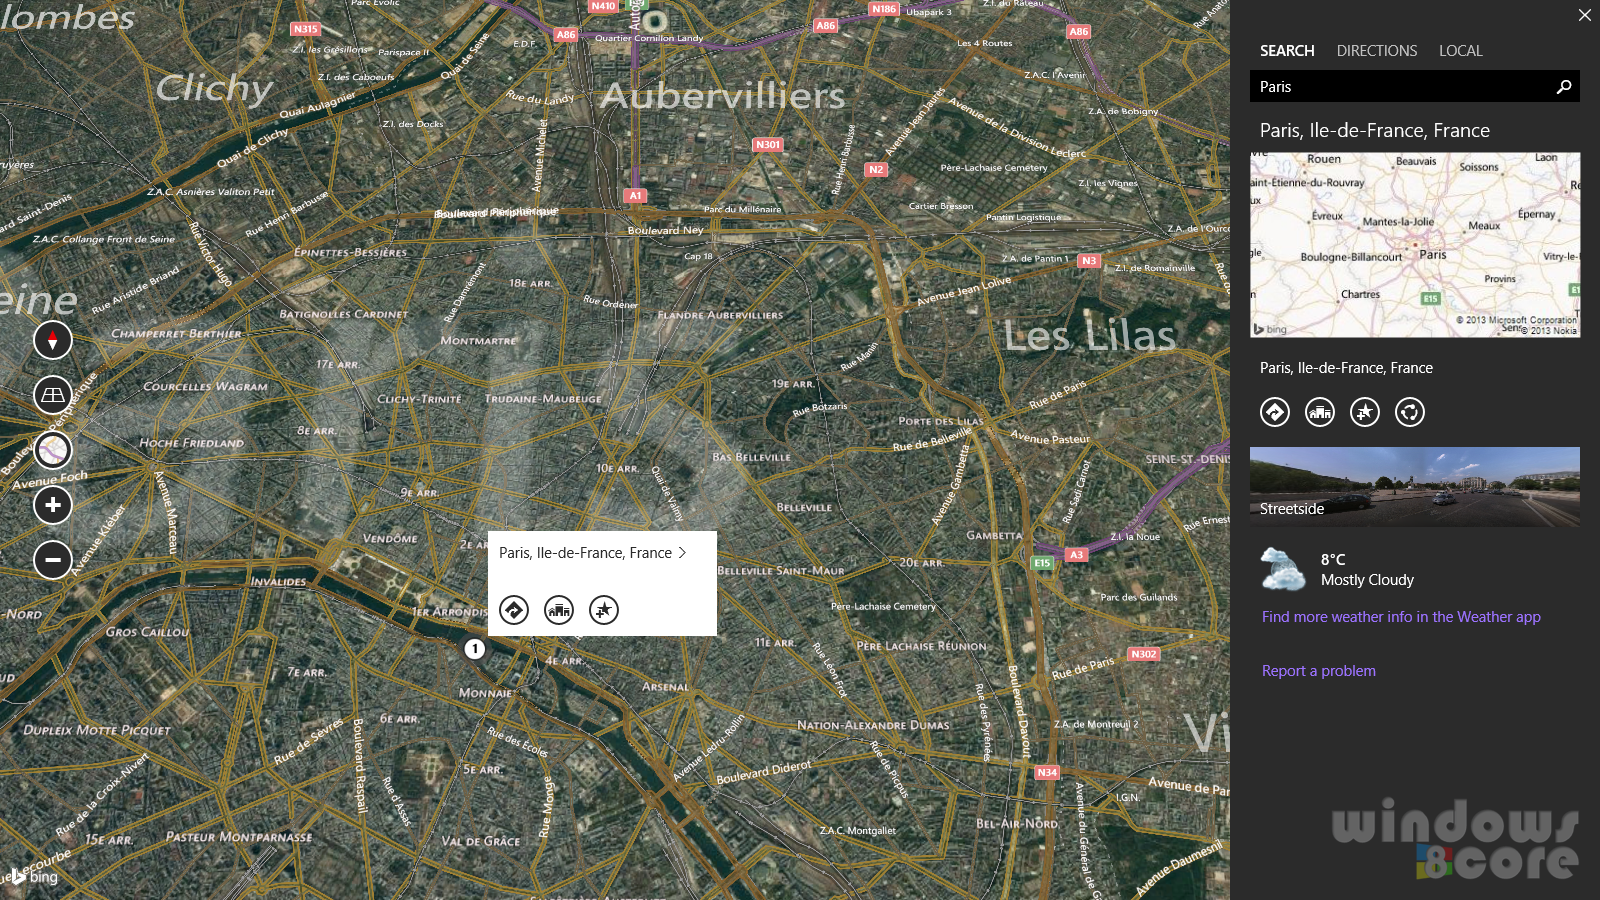 Download Bing Maps app preview with 3D maps and street